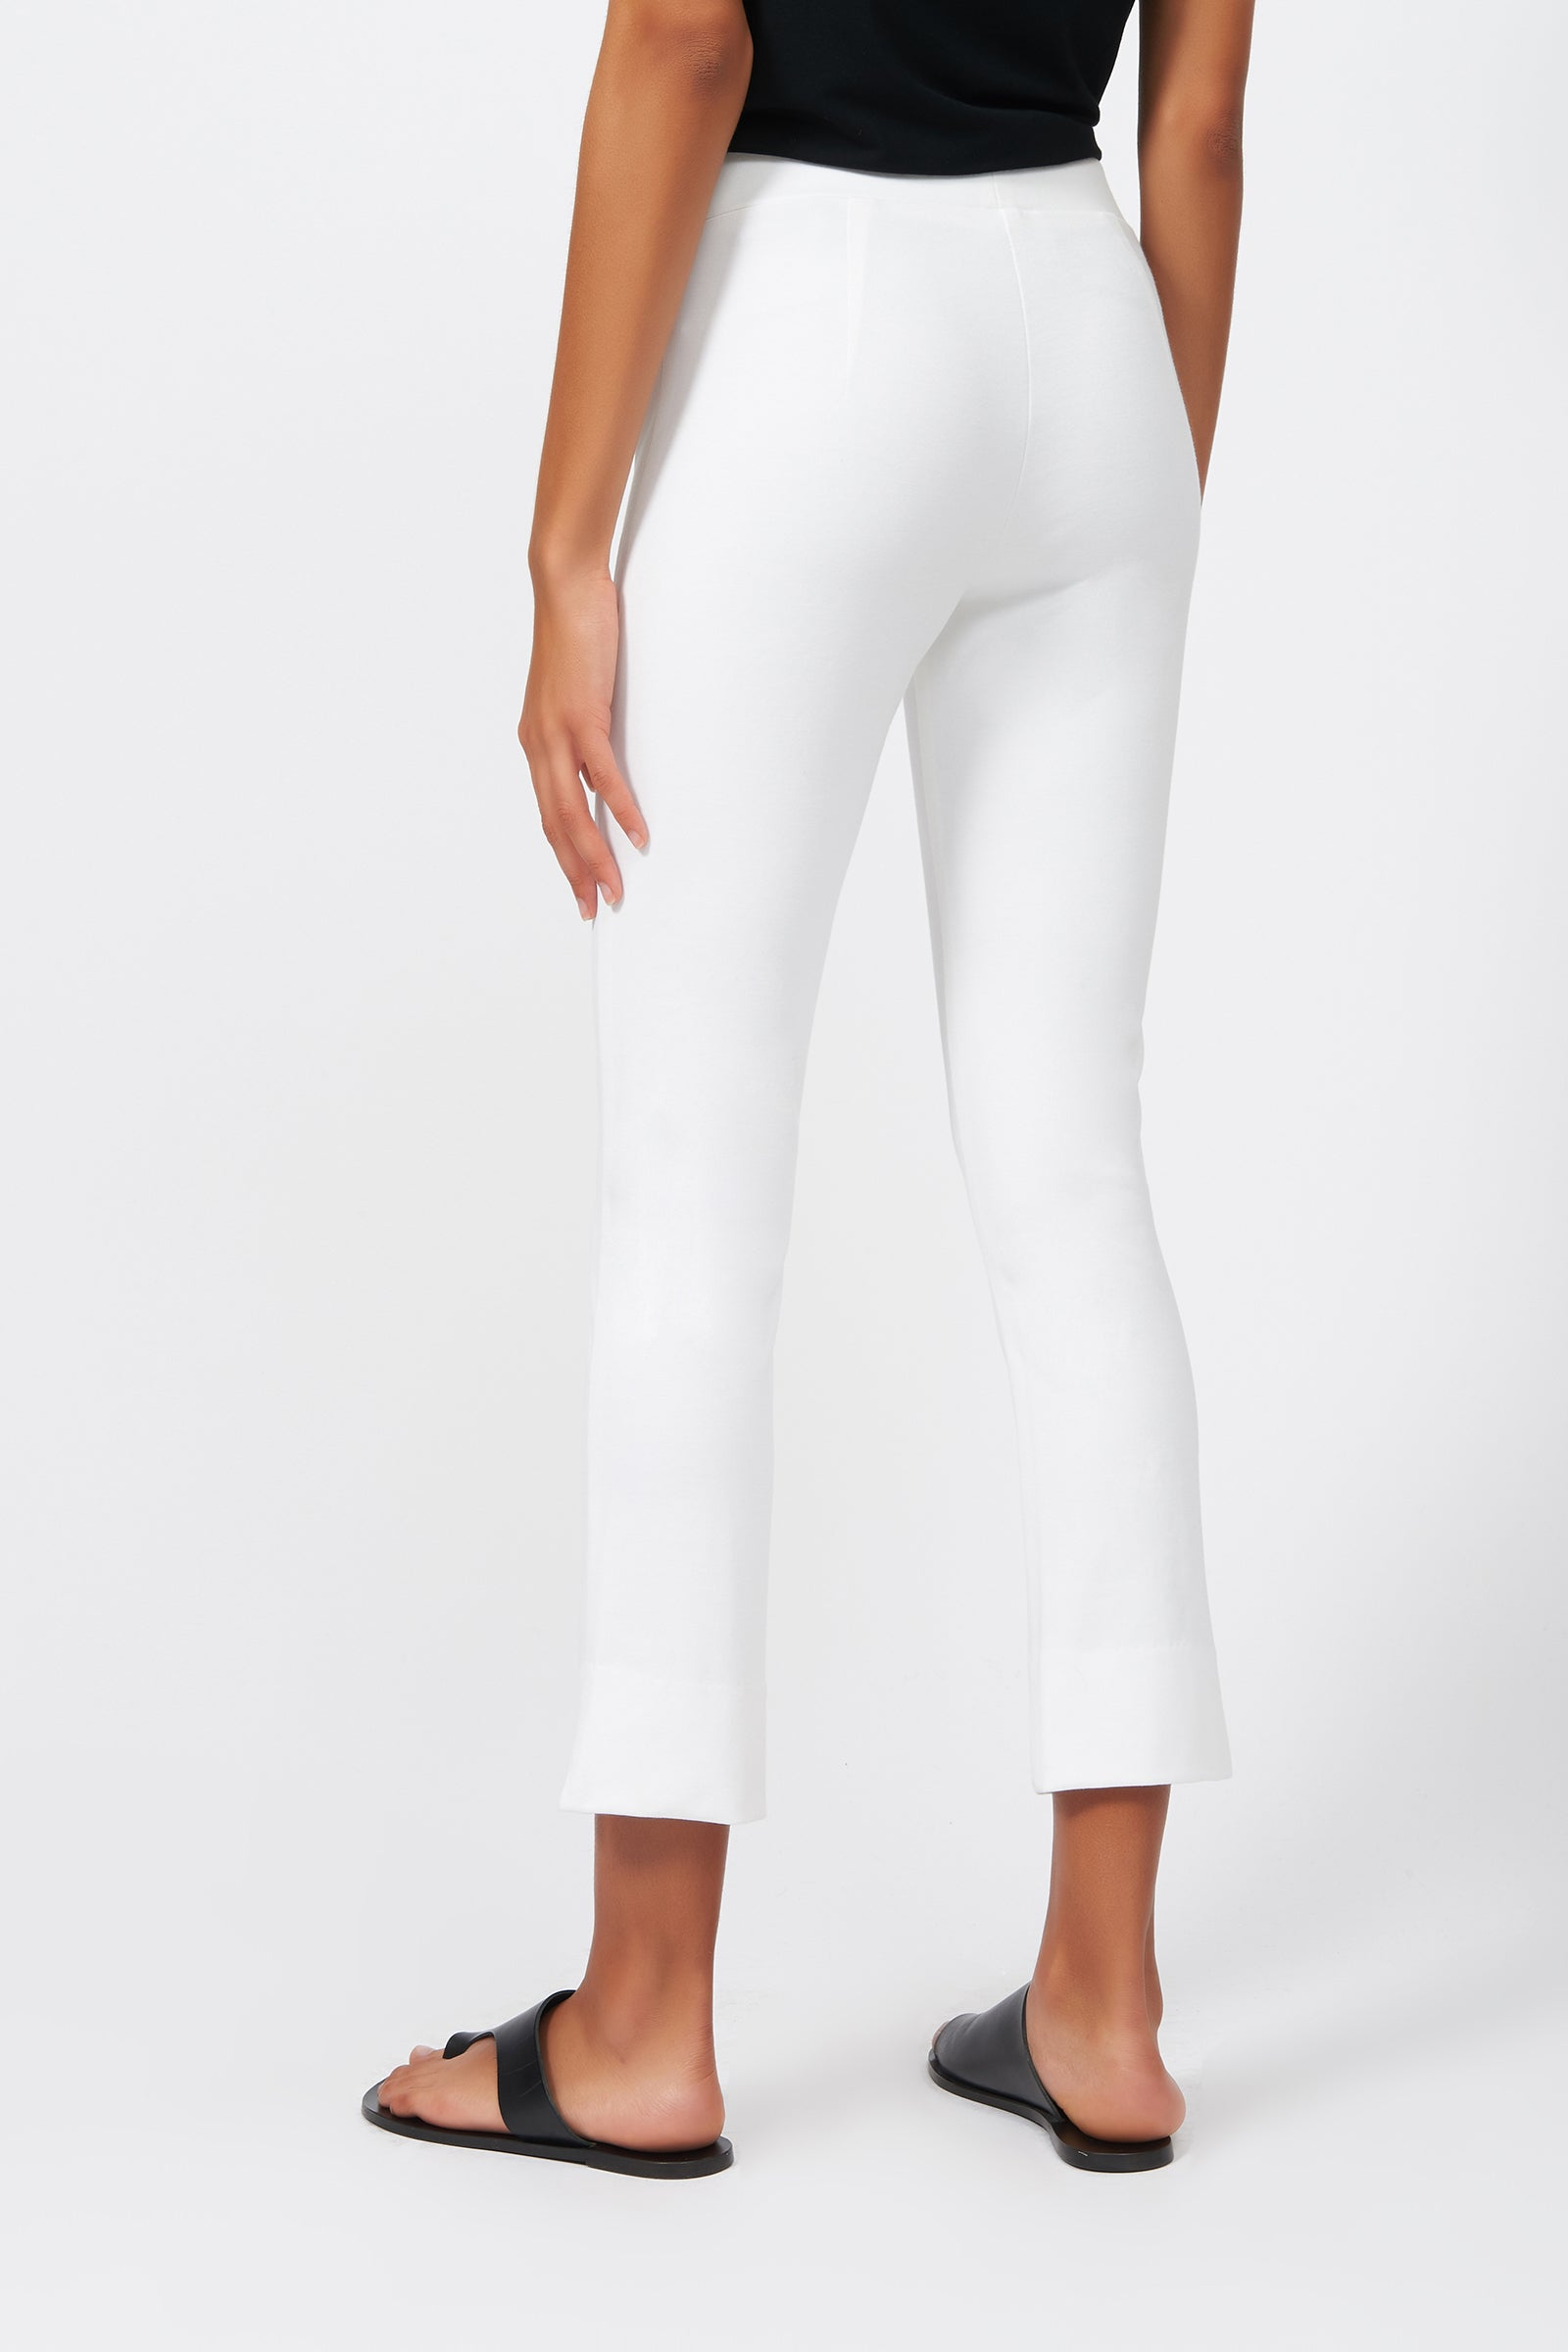 Kal Rieman Pintuck Slit Capri in White on Model Full Front View